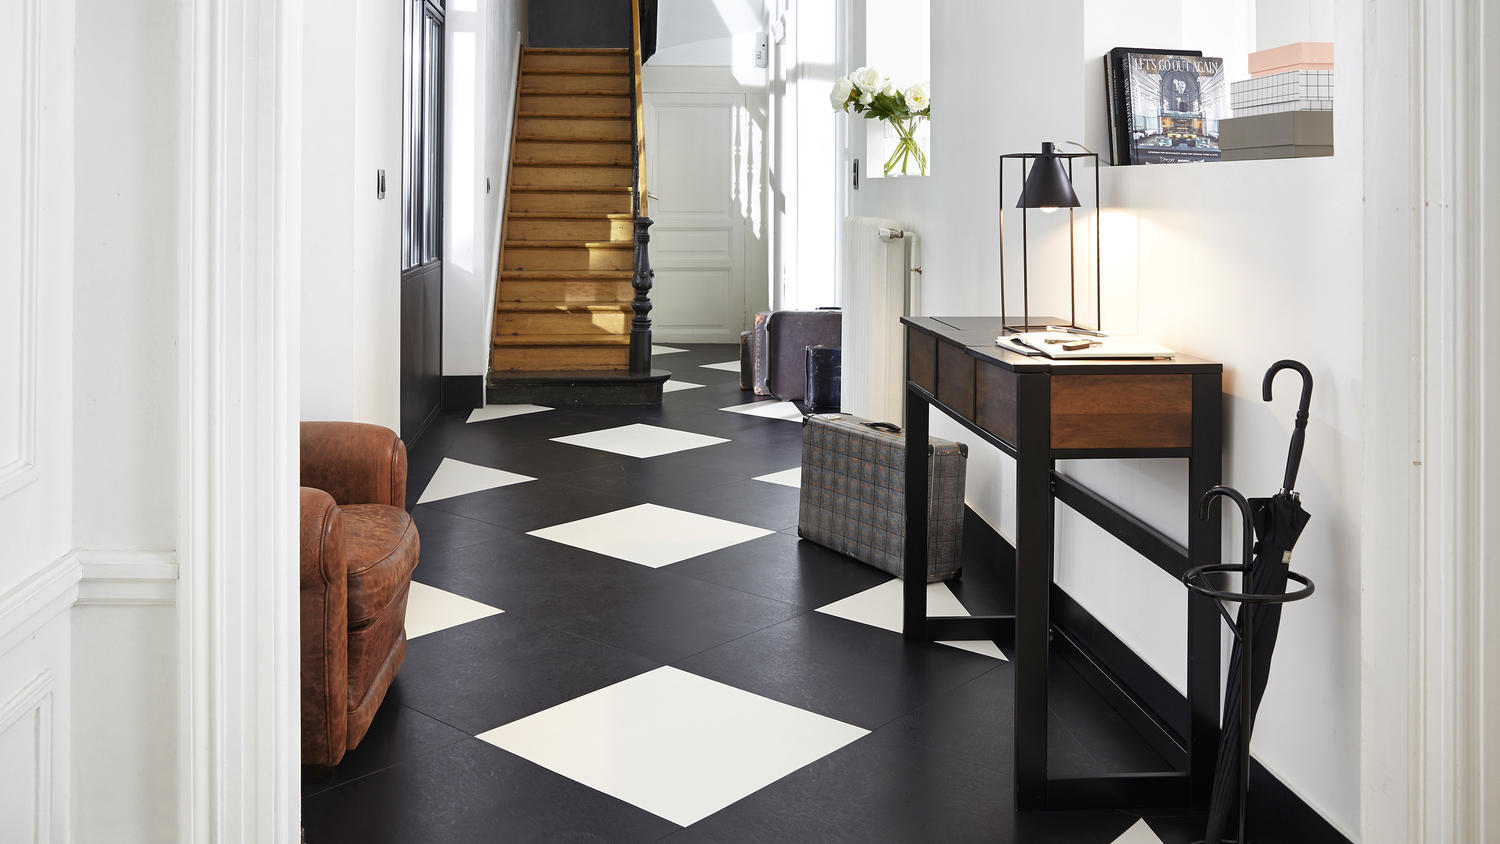 Modular Vinyl Flooring Solutions Offer Major Benefits And Infinite